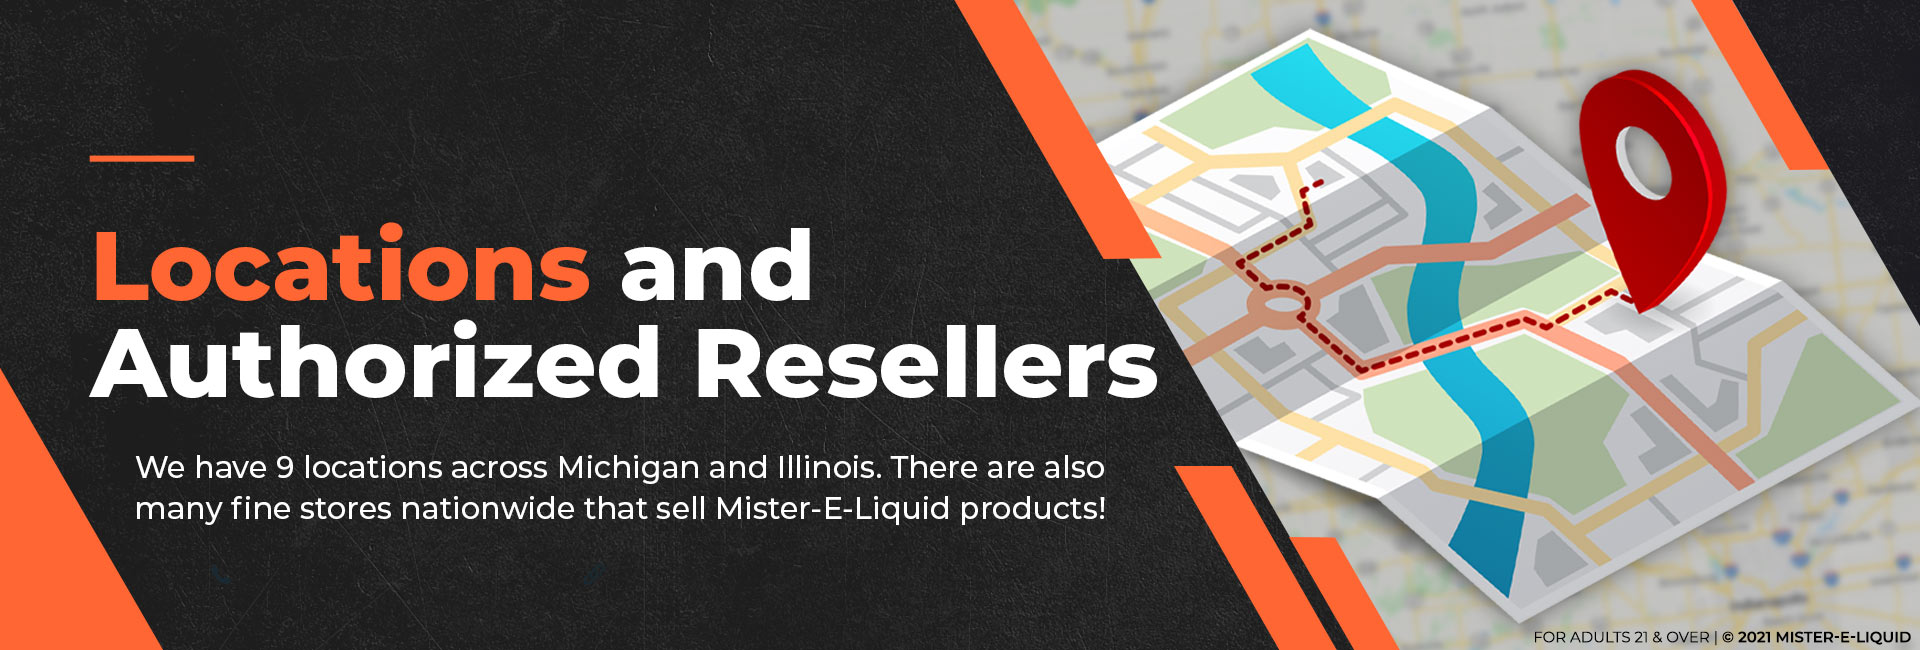 Retail Locations and Authorized Resellers